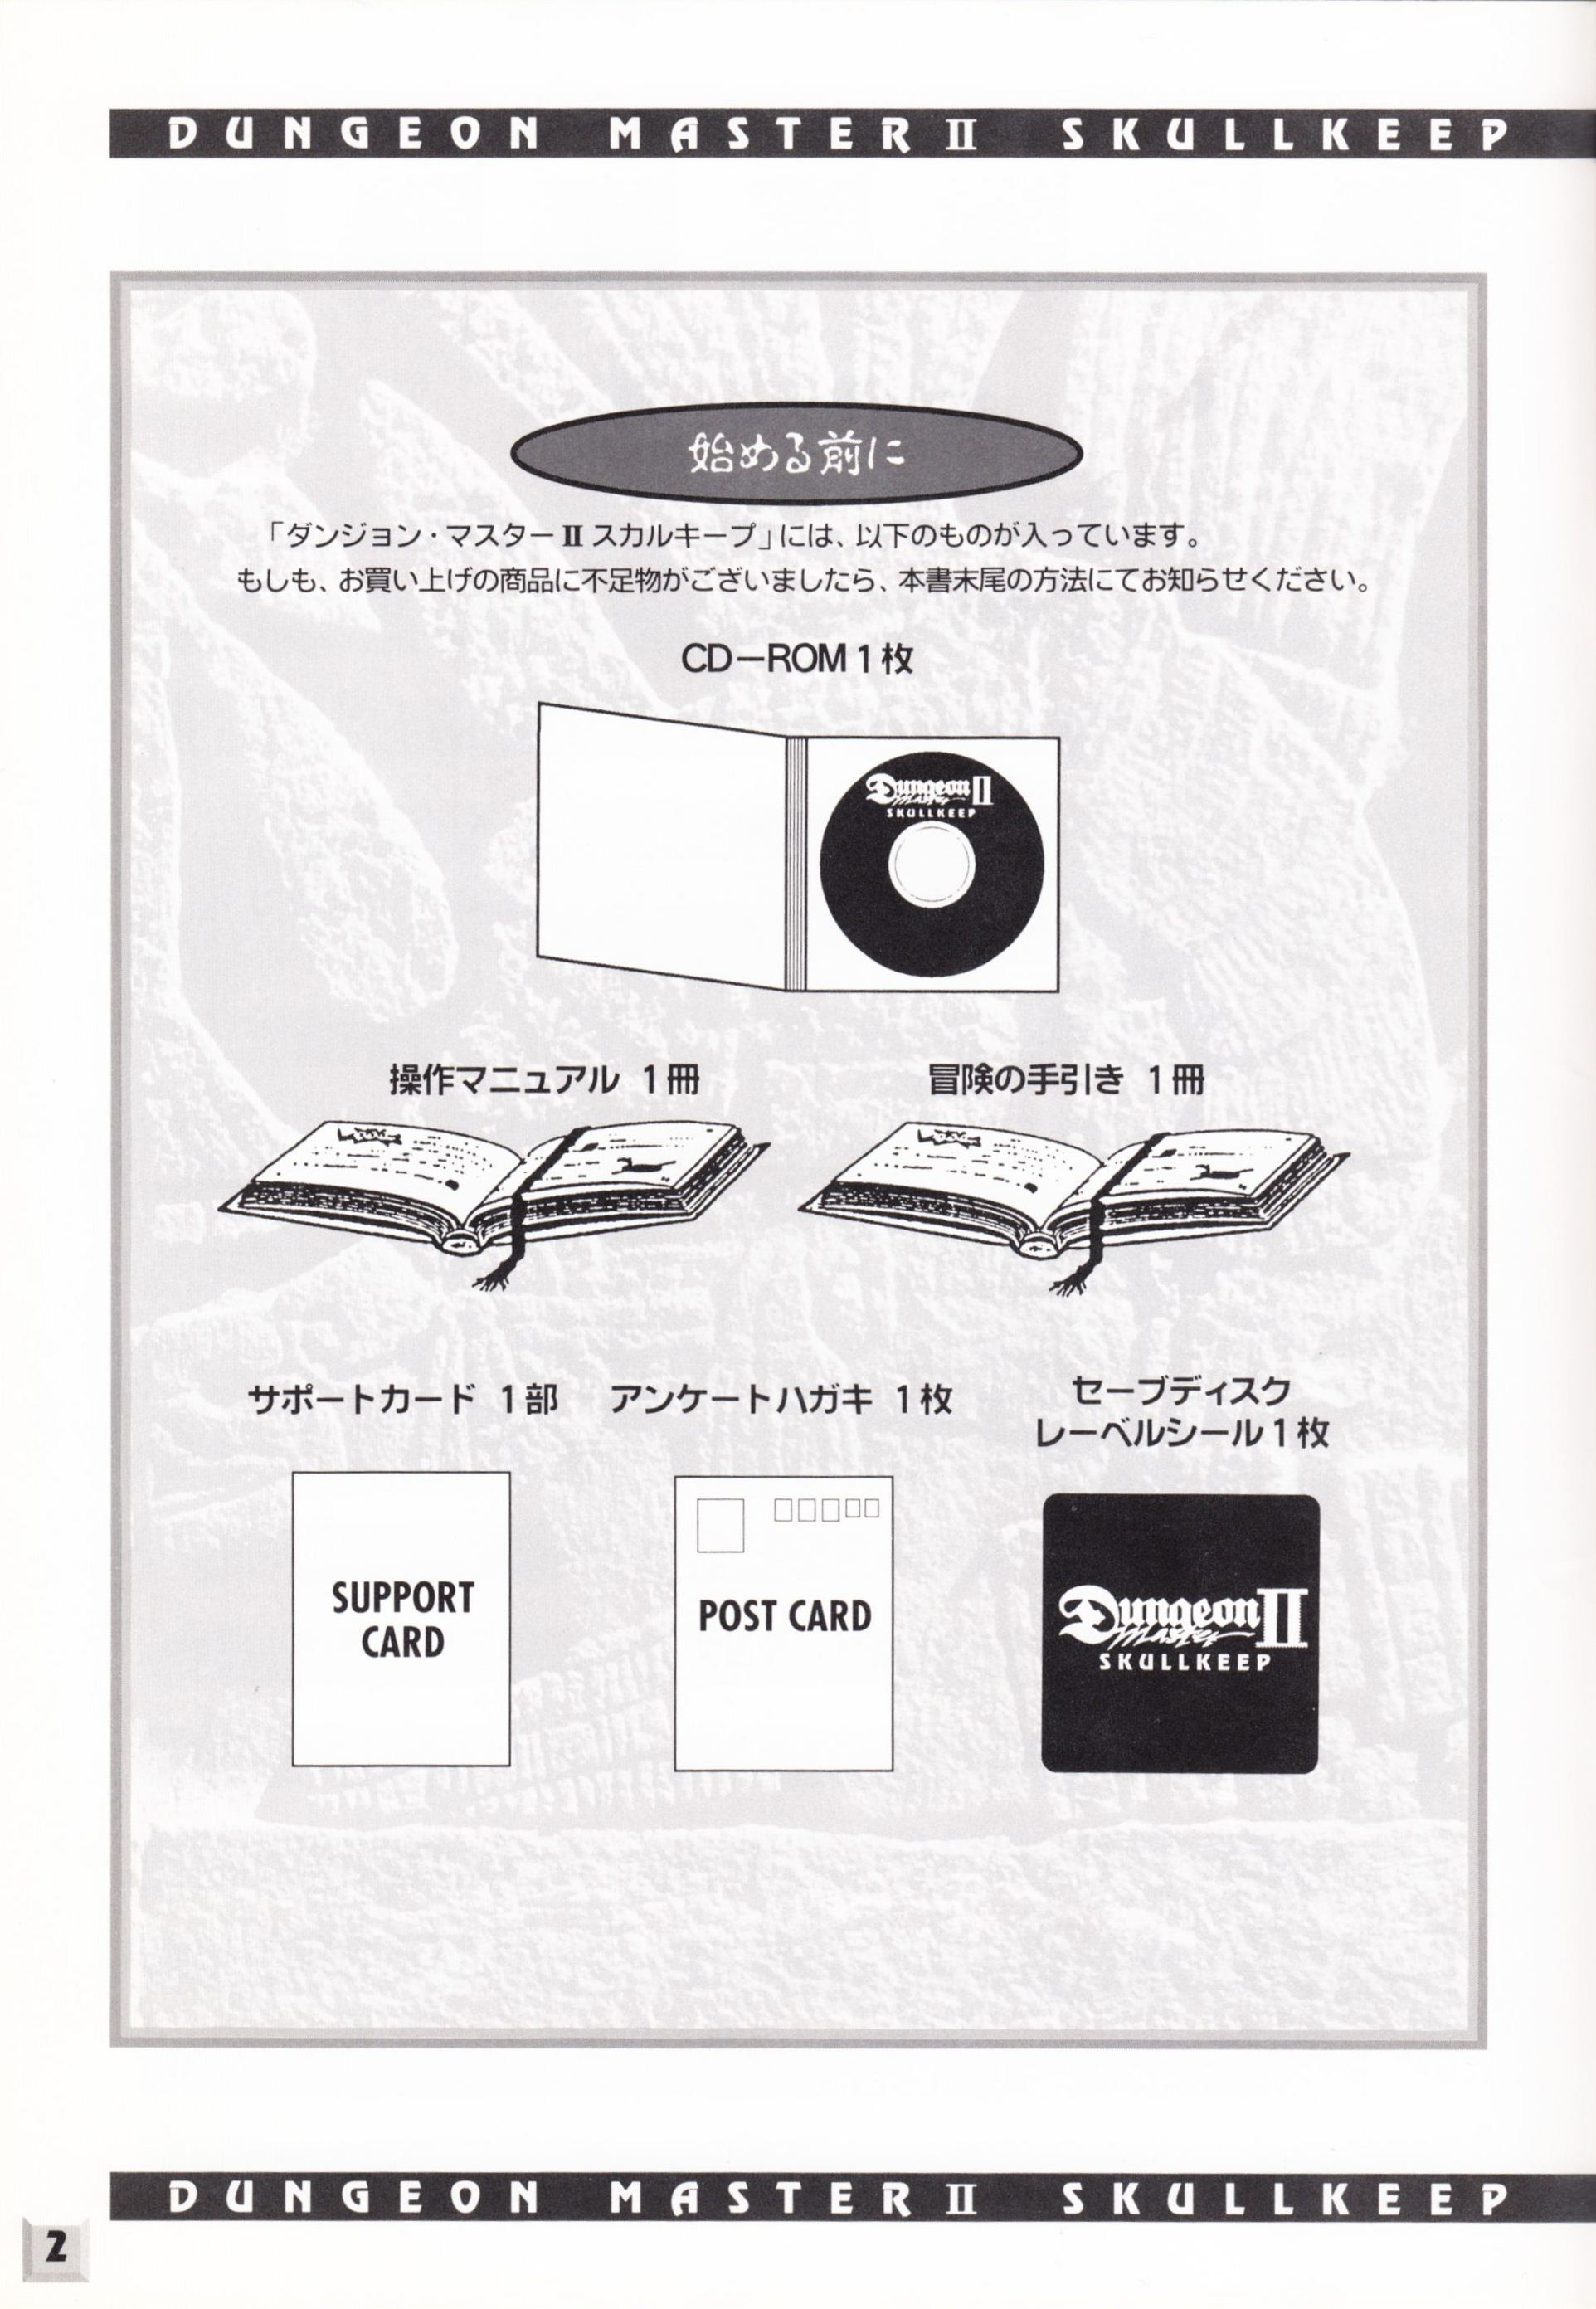 Game - Dungeon Master II - JP - FM Towns - An Operation Manual - Page 004 - Scan